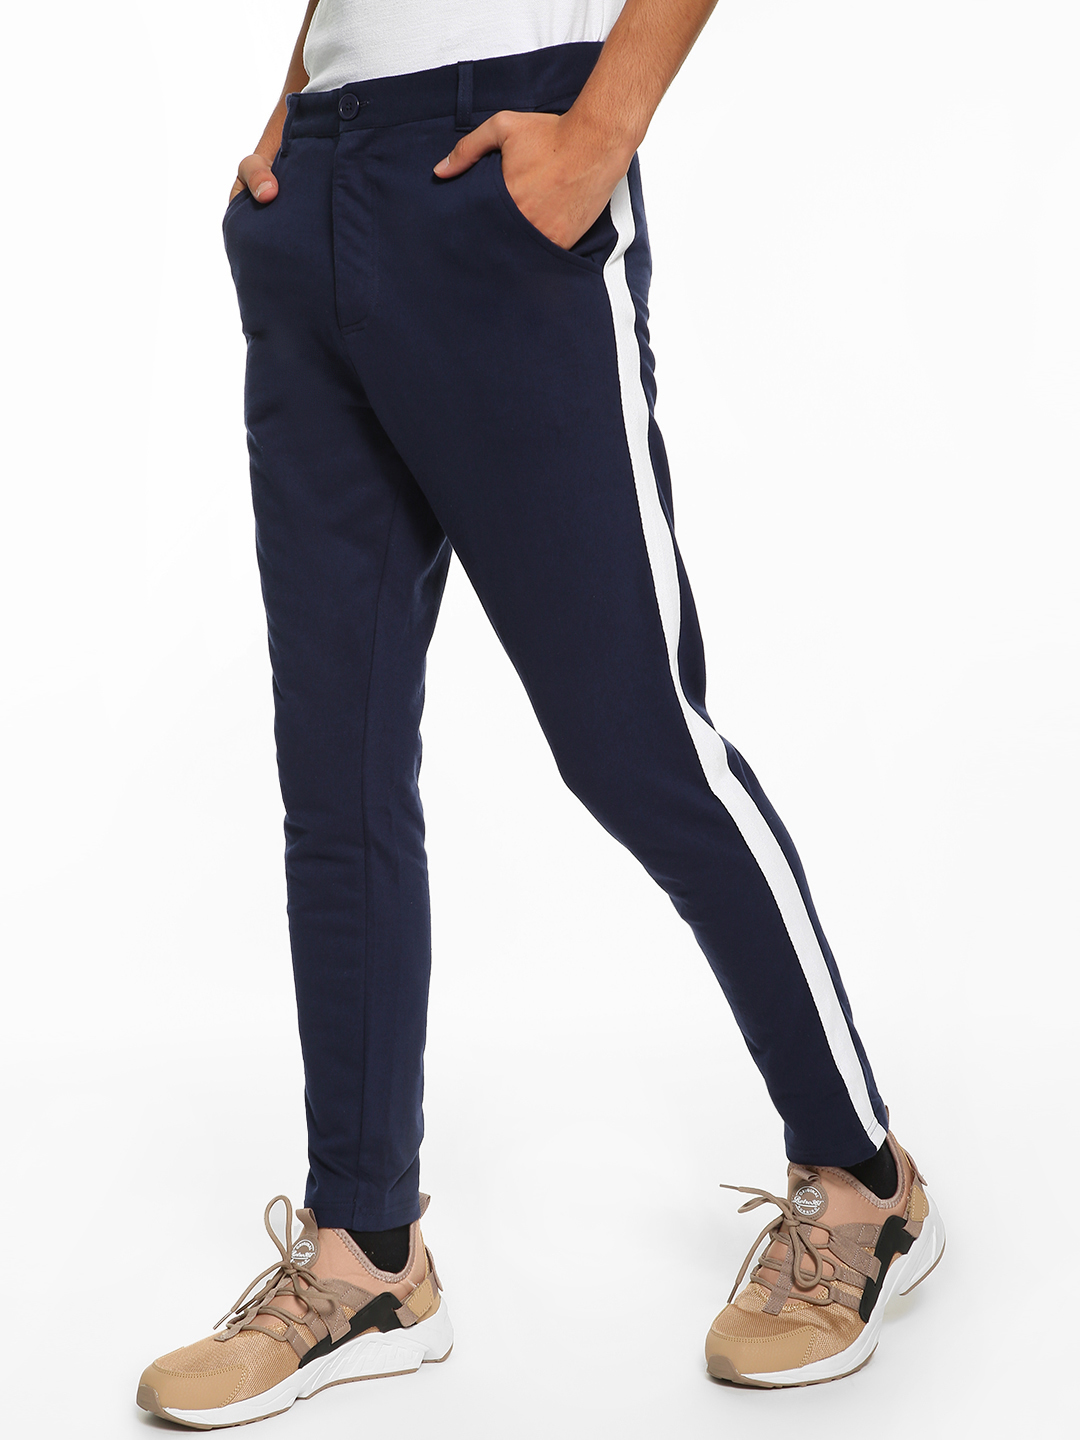 Garcon Navy Knitted Side Tape Trousers 1